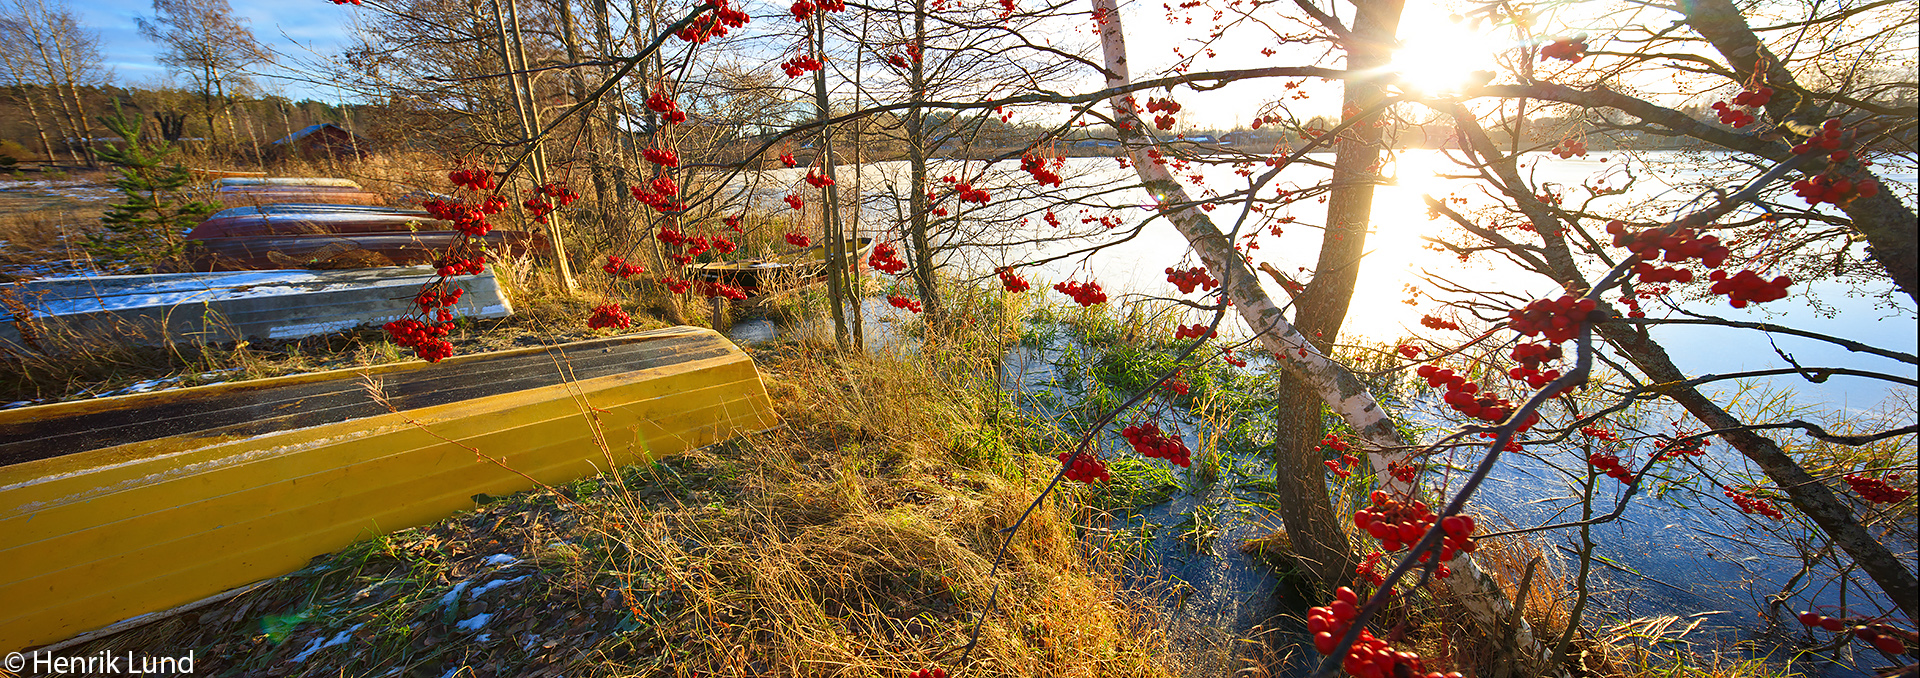 Morning at the boat harbour with colorful rowanberries. Lappträsk, Finland. November 2017.